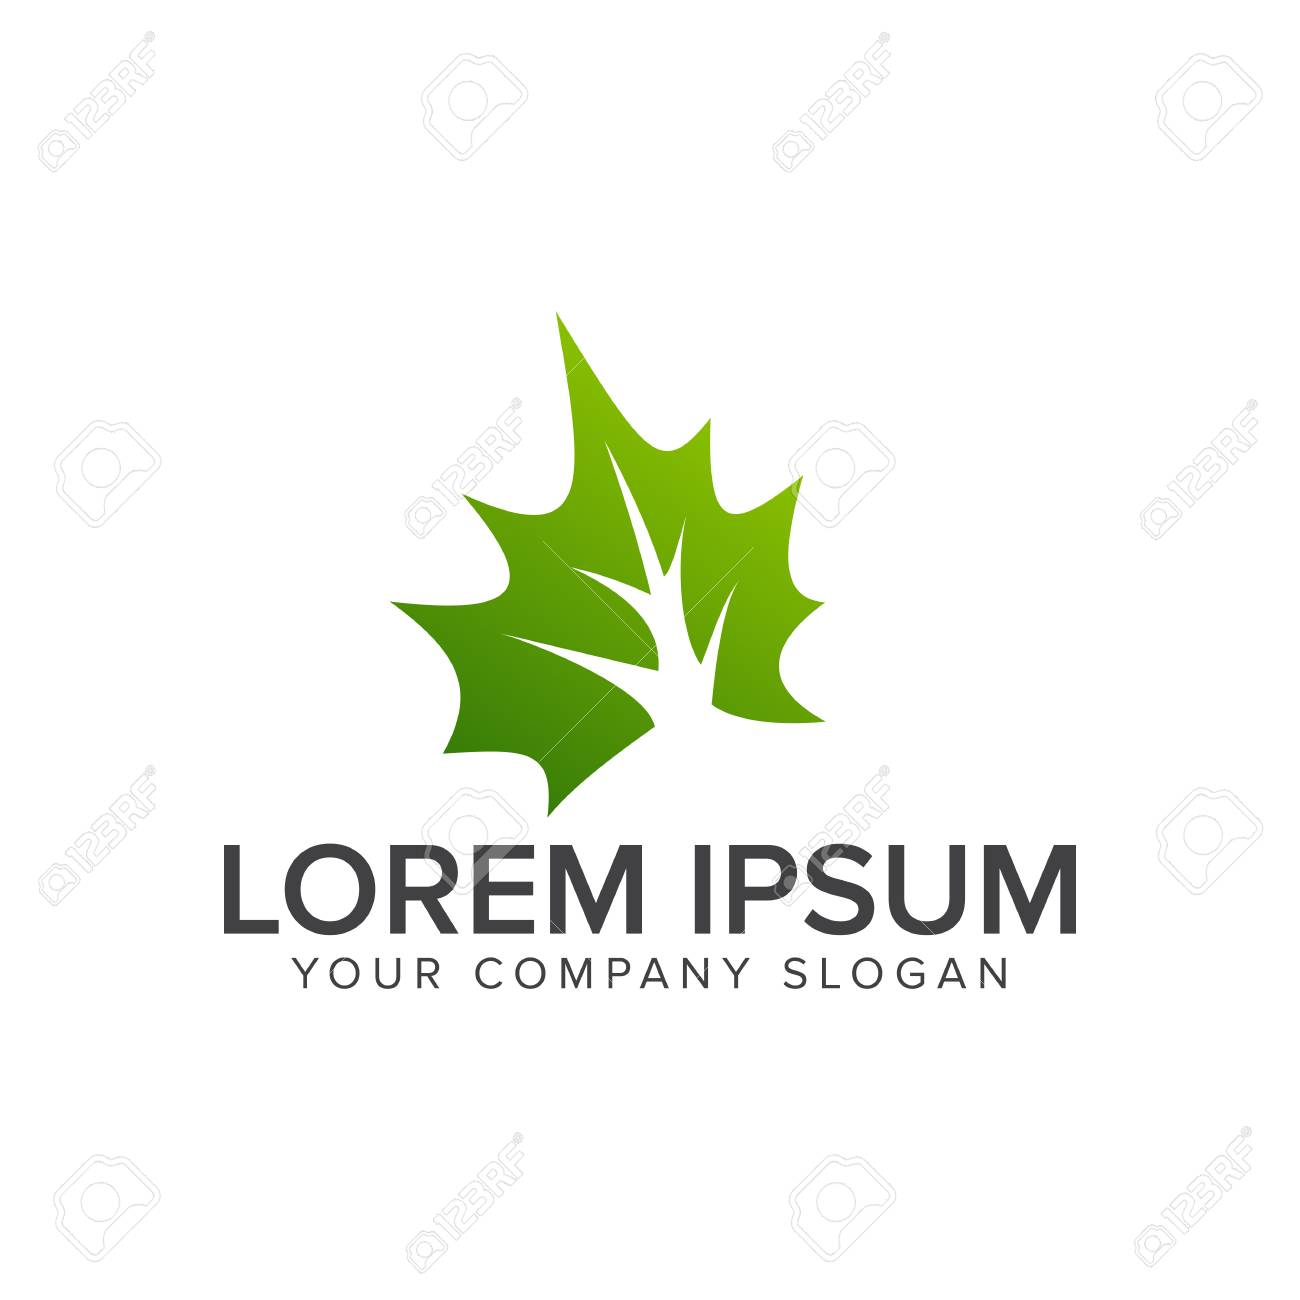 Leaf Green Logo Environmental And Landscaping Garden Logo Design Royalty Free Cliparts Vectors And Stock Illustration Image 82863534